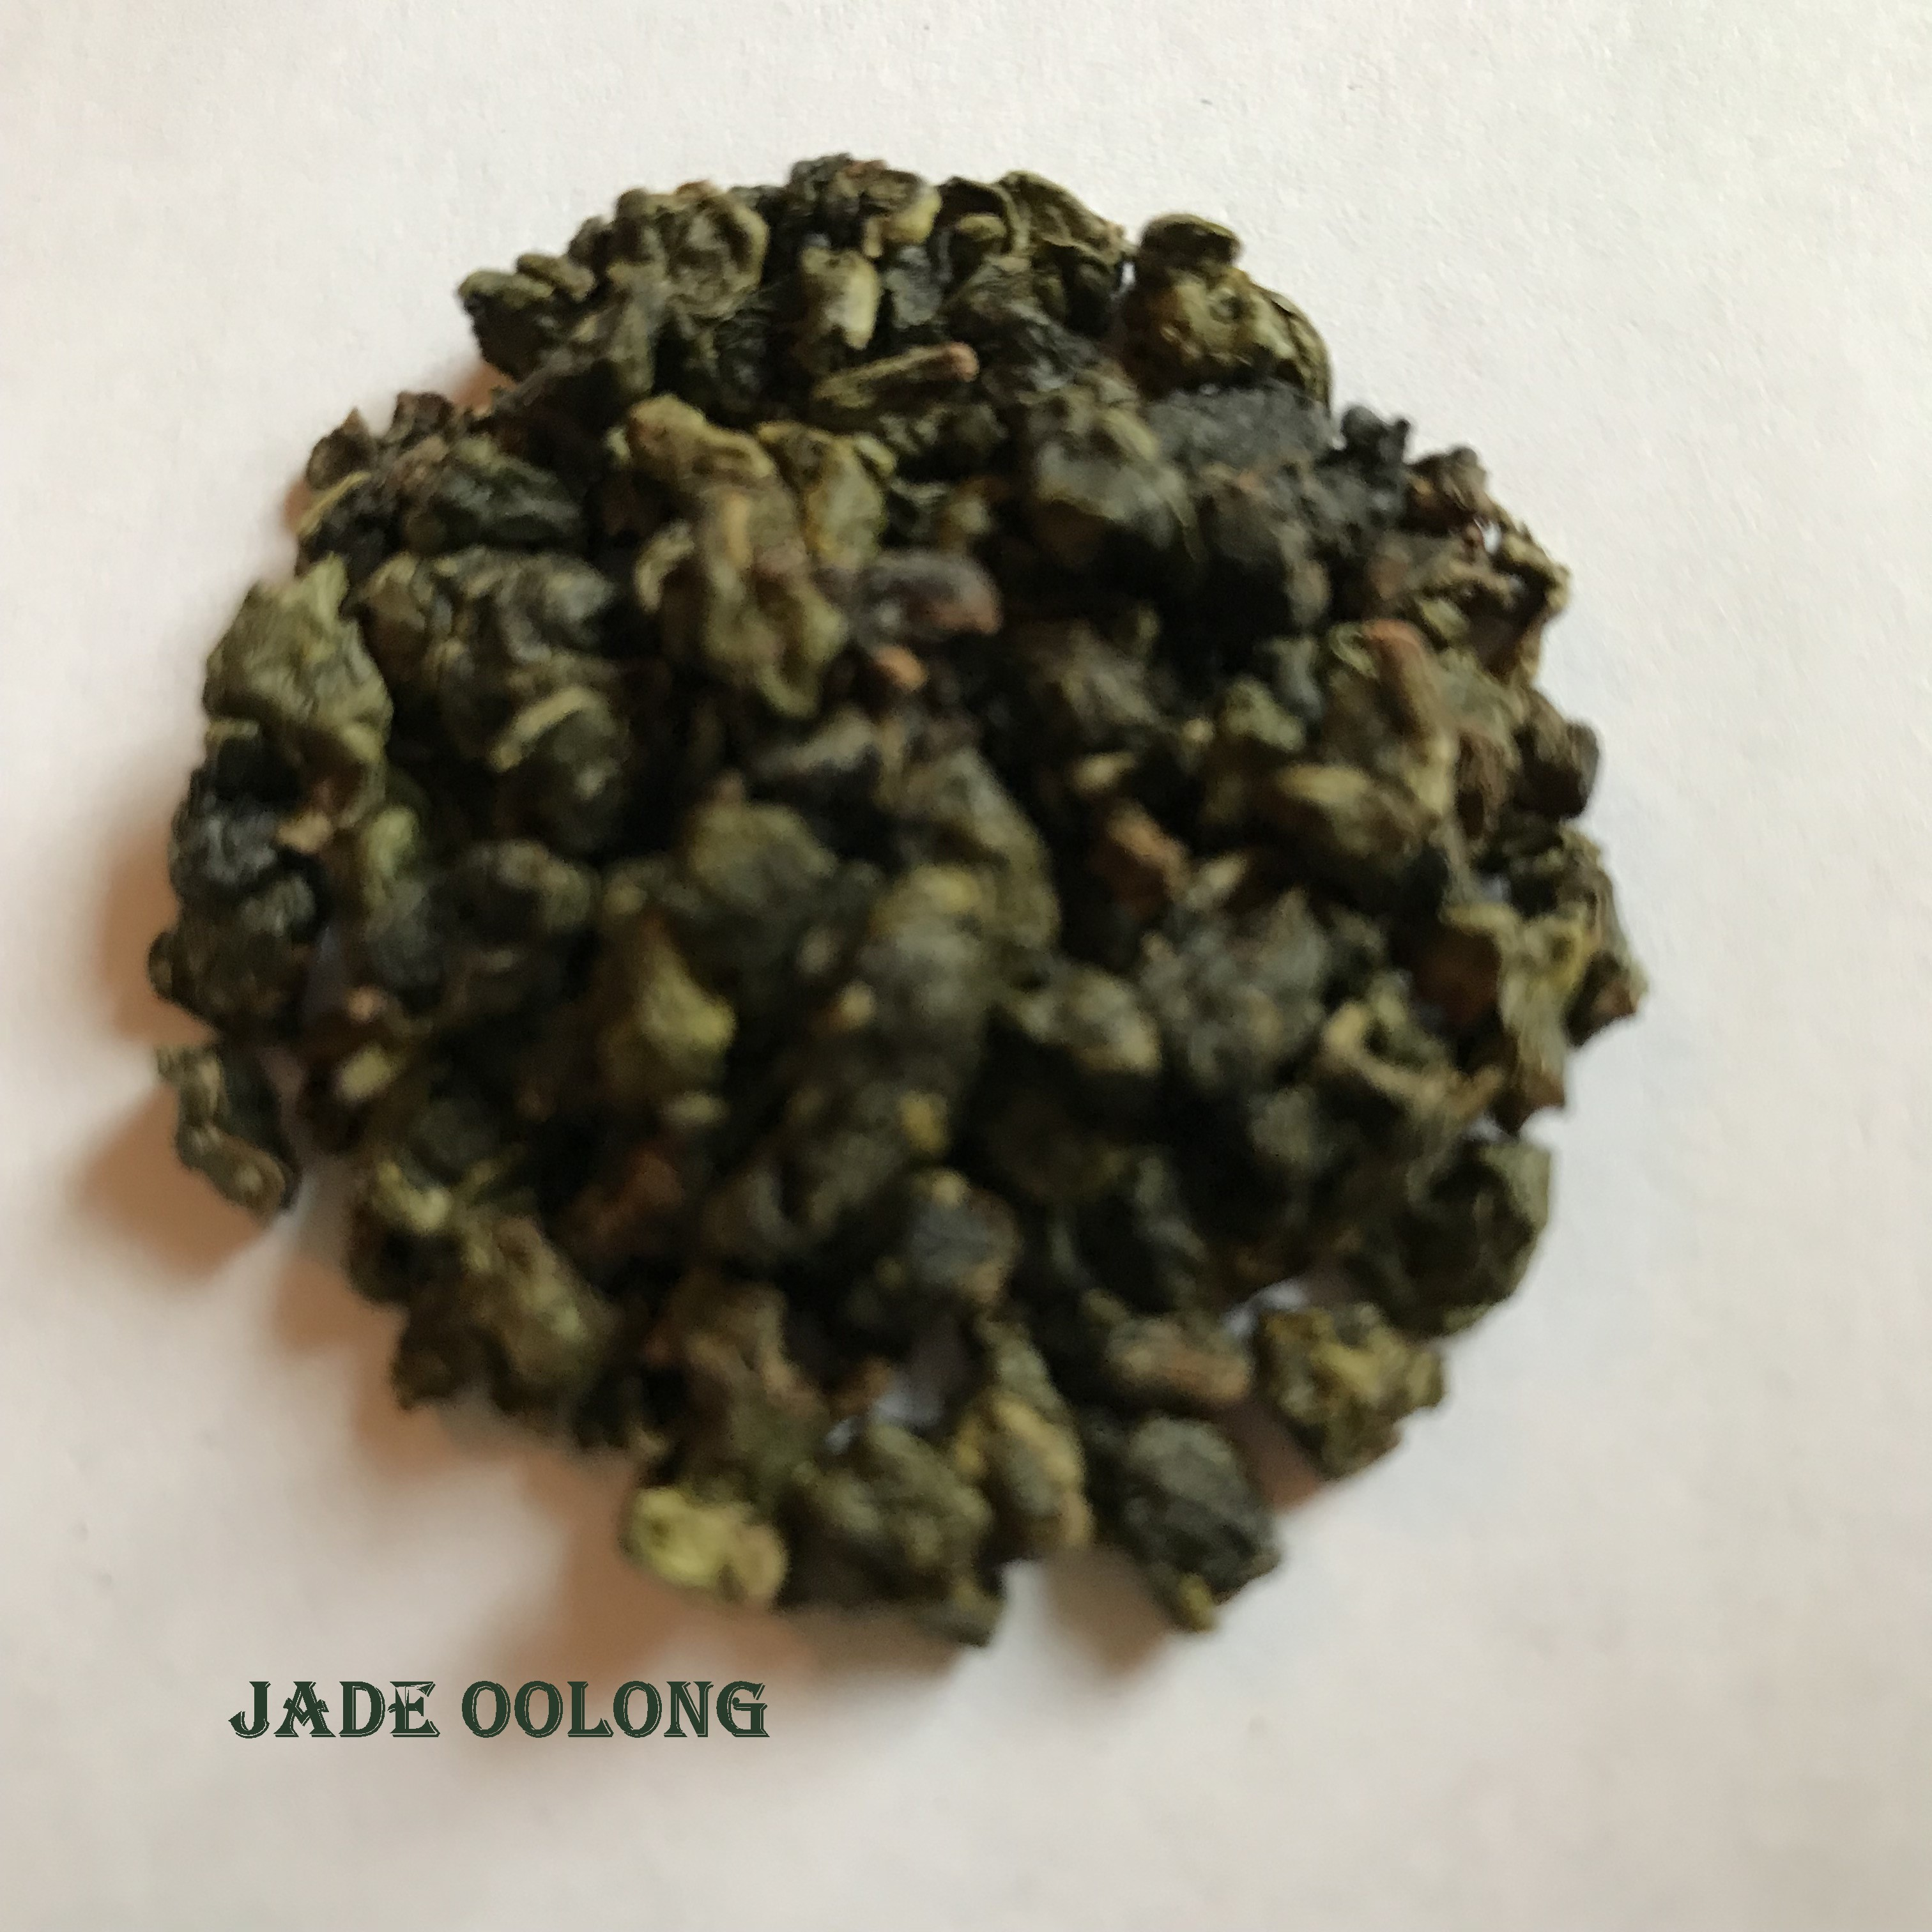 Jade Oolong - add this one to your oolong collection